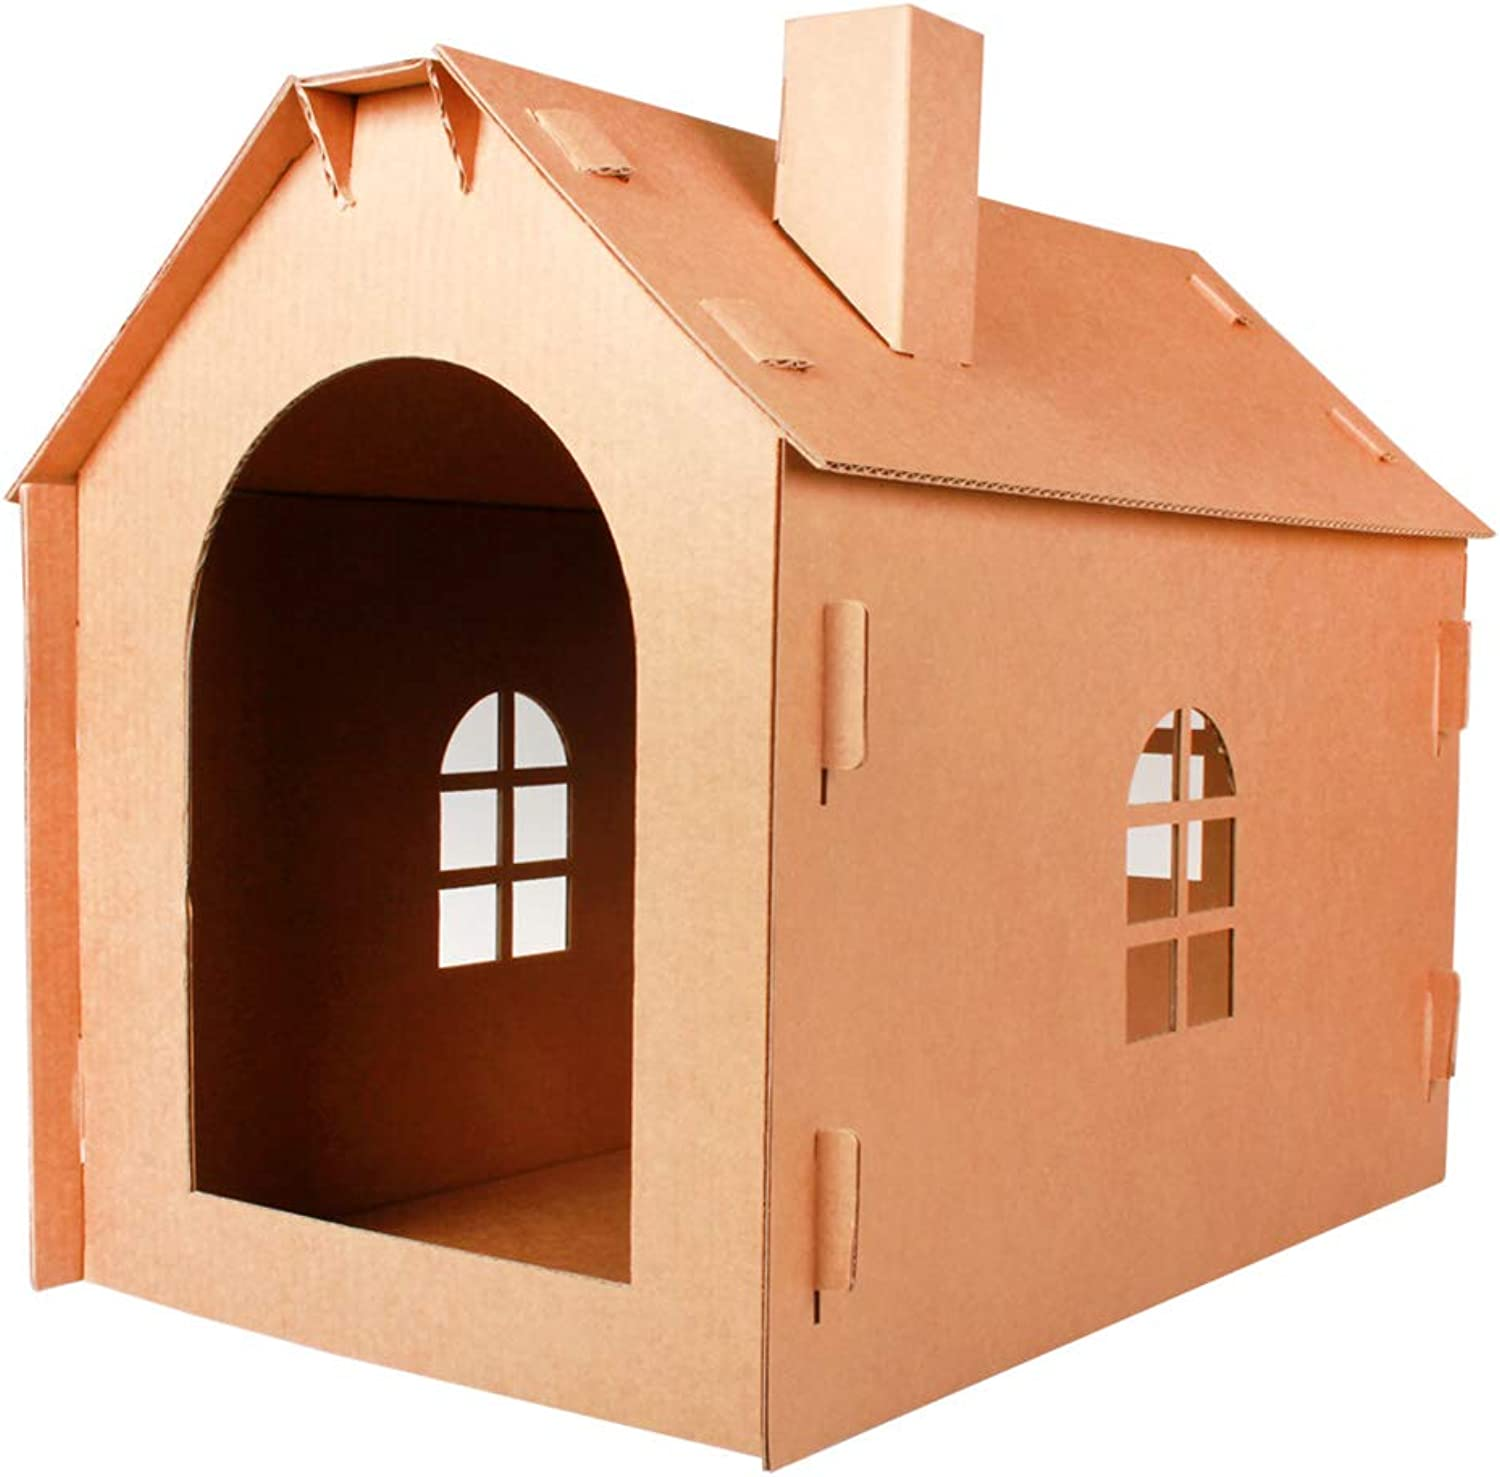 Cages Pet House Corrugated Cat House Cat Litter Cat House Cat Claws Cardboard Cat Carton Gift (color   Brown, Size   51  35  43cm)